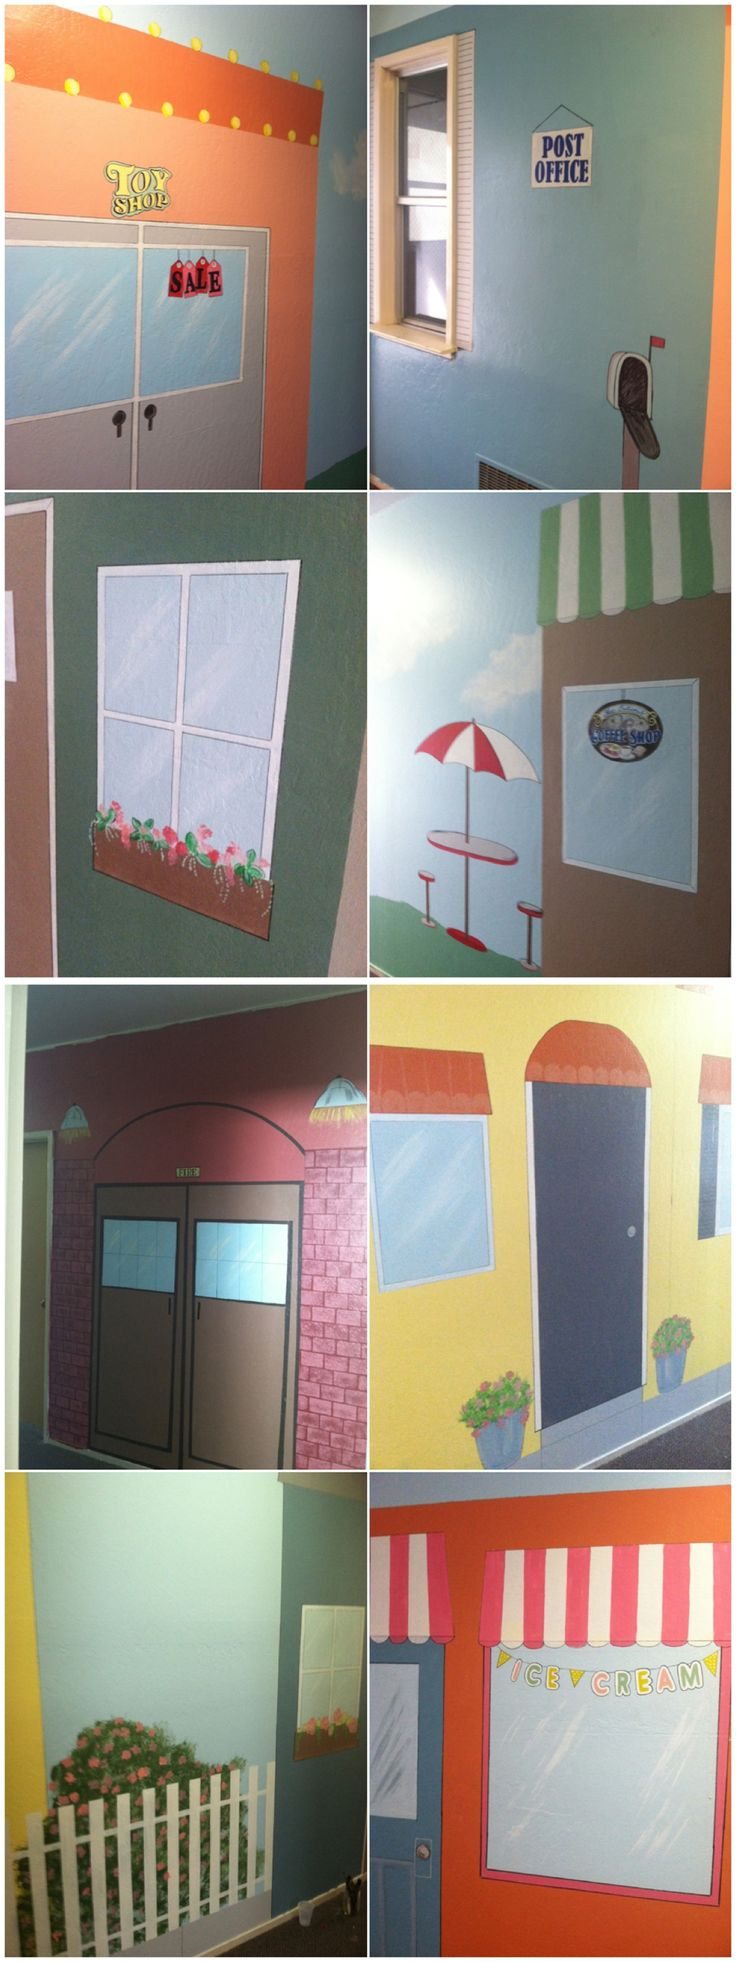 Mural project of approx. 212 ft of hallway space.  Kids town main street with ice cream shop, post office, coffee shop, fire station, toy shop, park space, and houses.